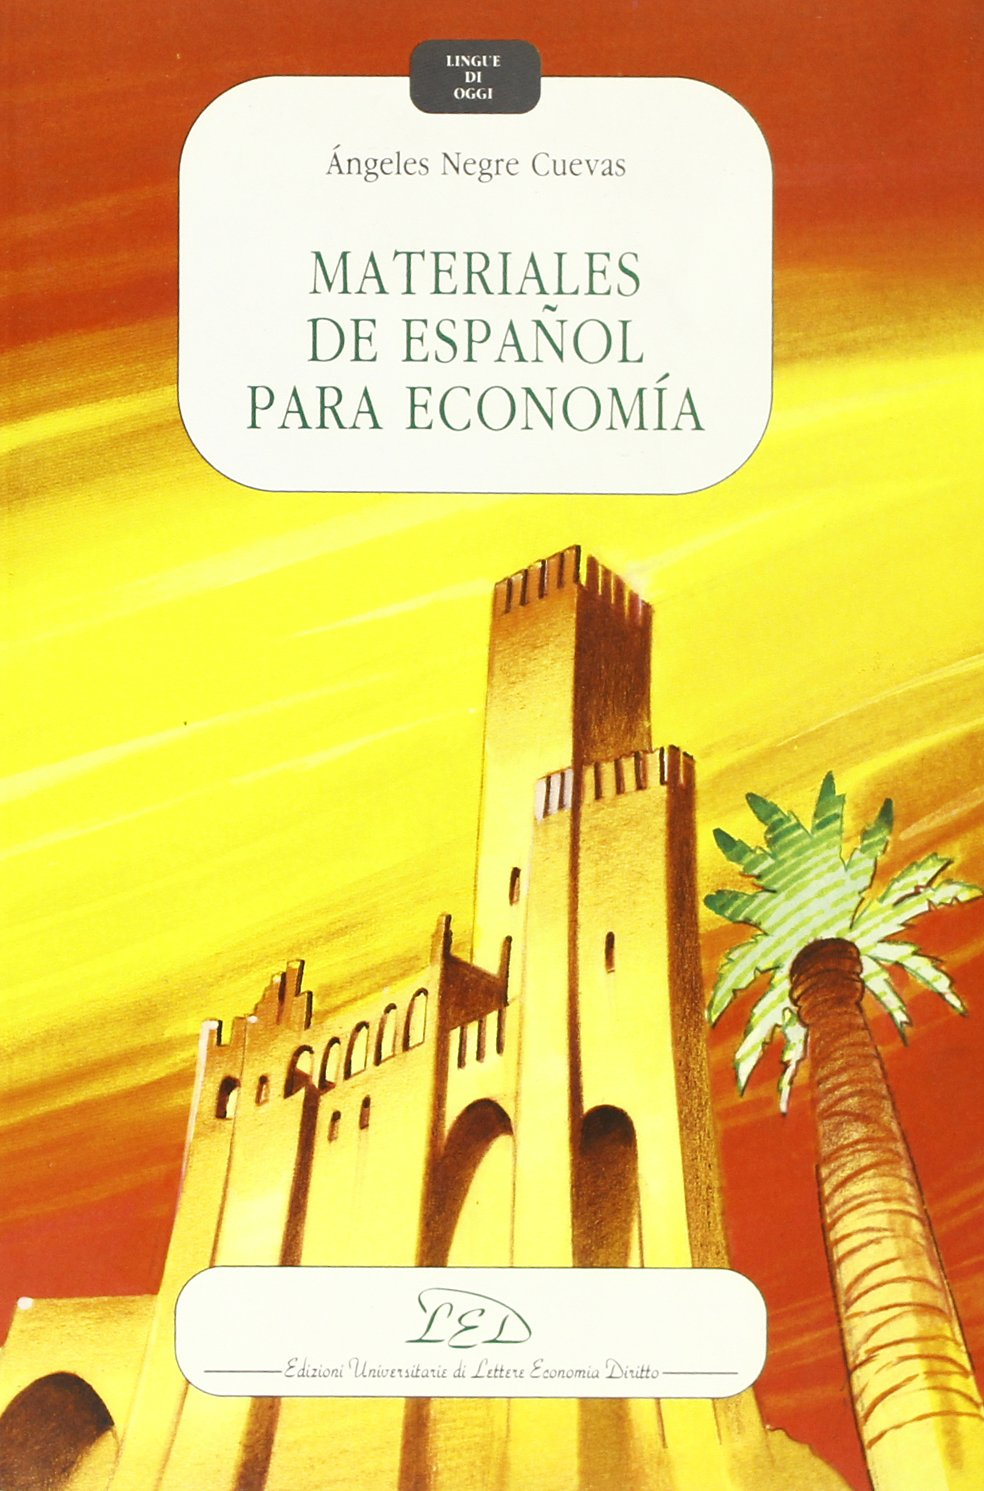 Materiales de Español para Economía (Lingue di Oggi): Negre Cuevas Angeles: 9788879160179: Amazon.com: Books